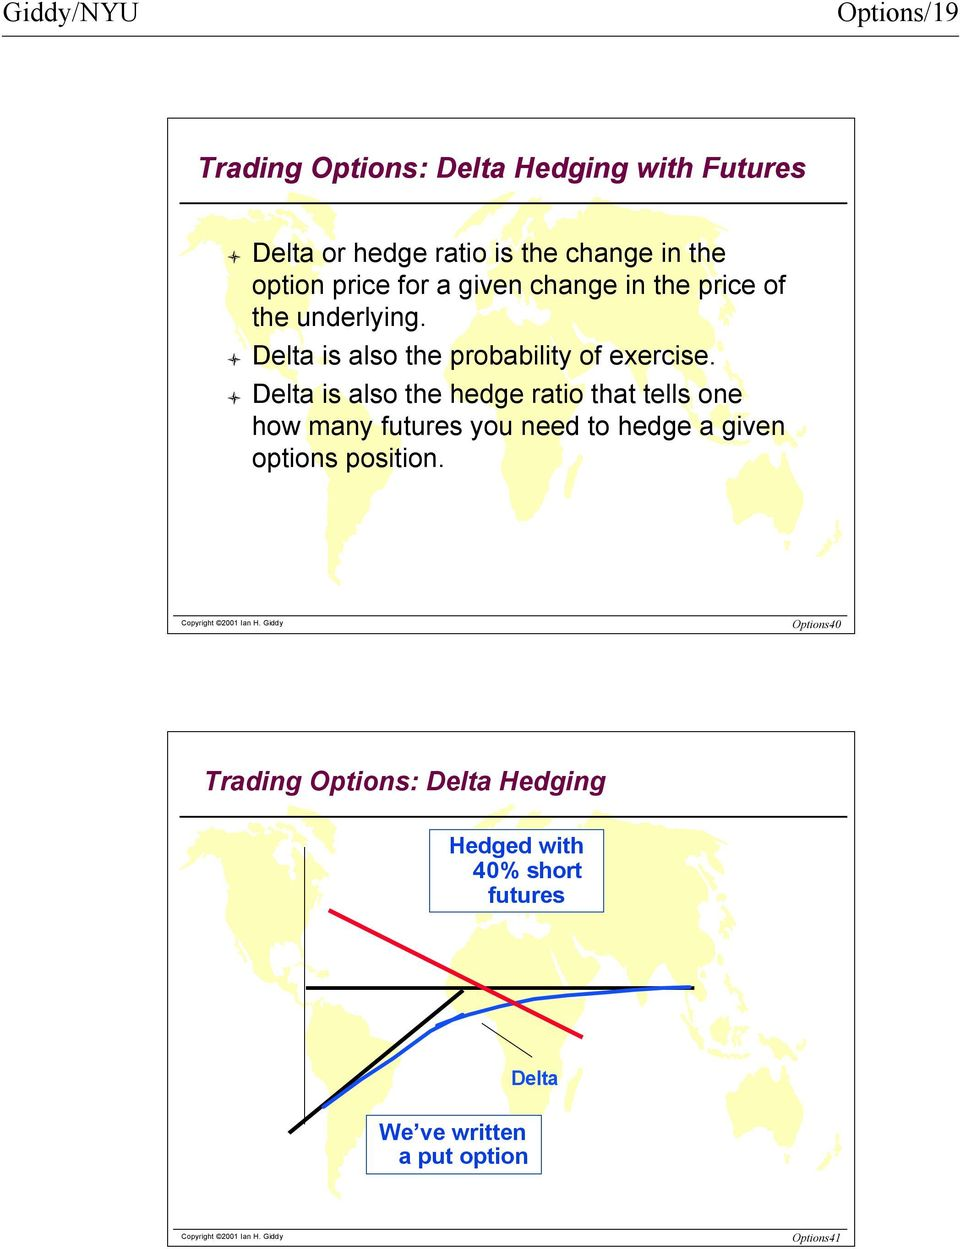 Delta is also the hedge ratio that tells one how many futures you need to hedge a given options position.